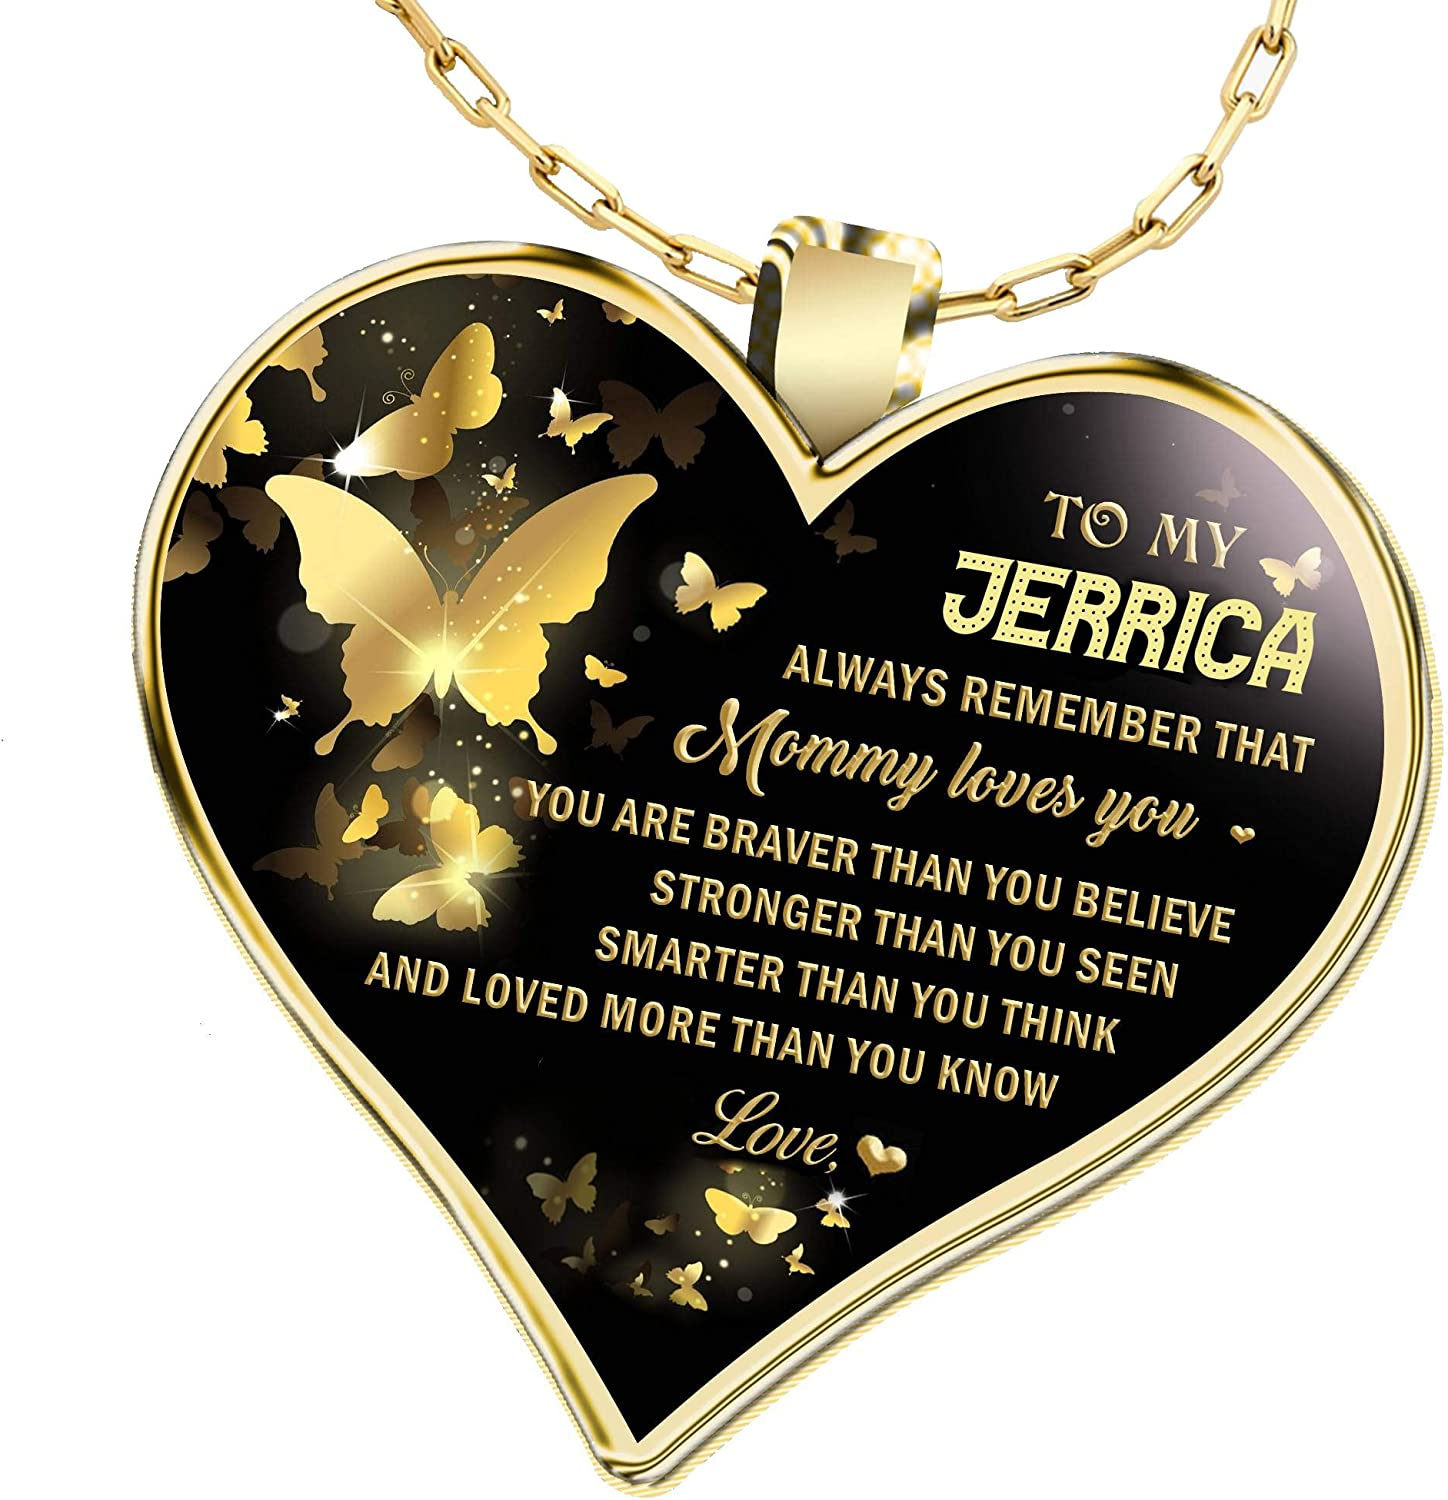 Gifts Necklace Name for Wife Courier shipping free shipping to That Jerrica My Remember Always OFFicial mail order